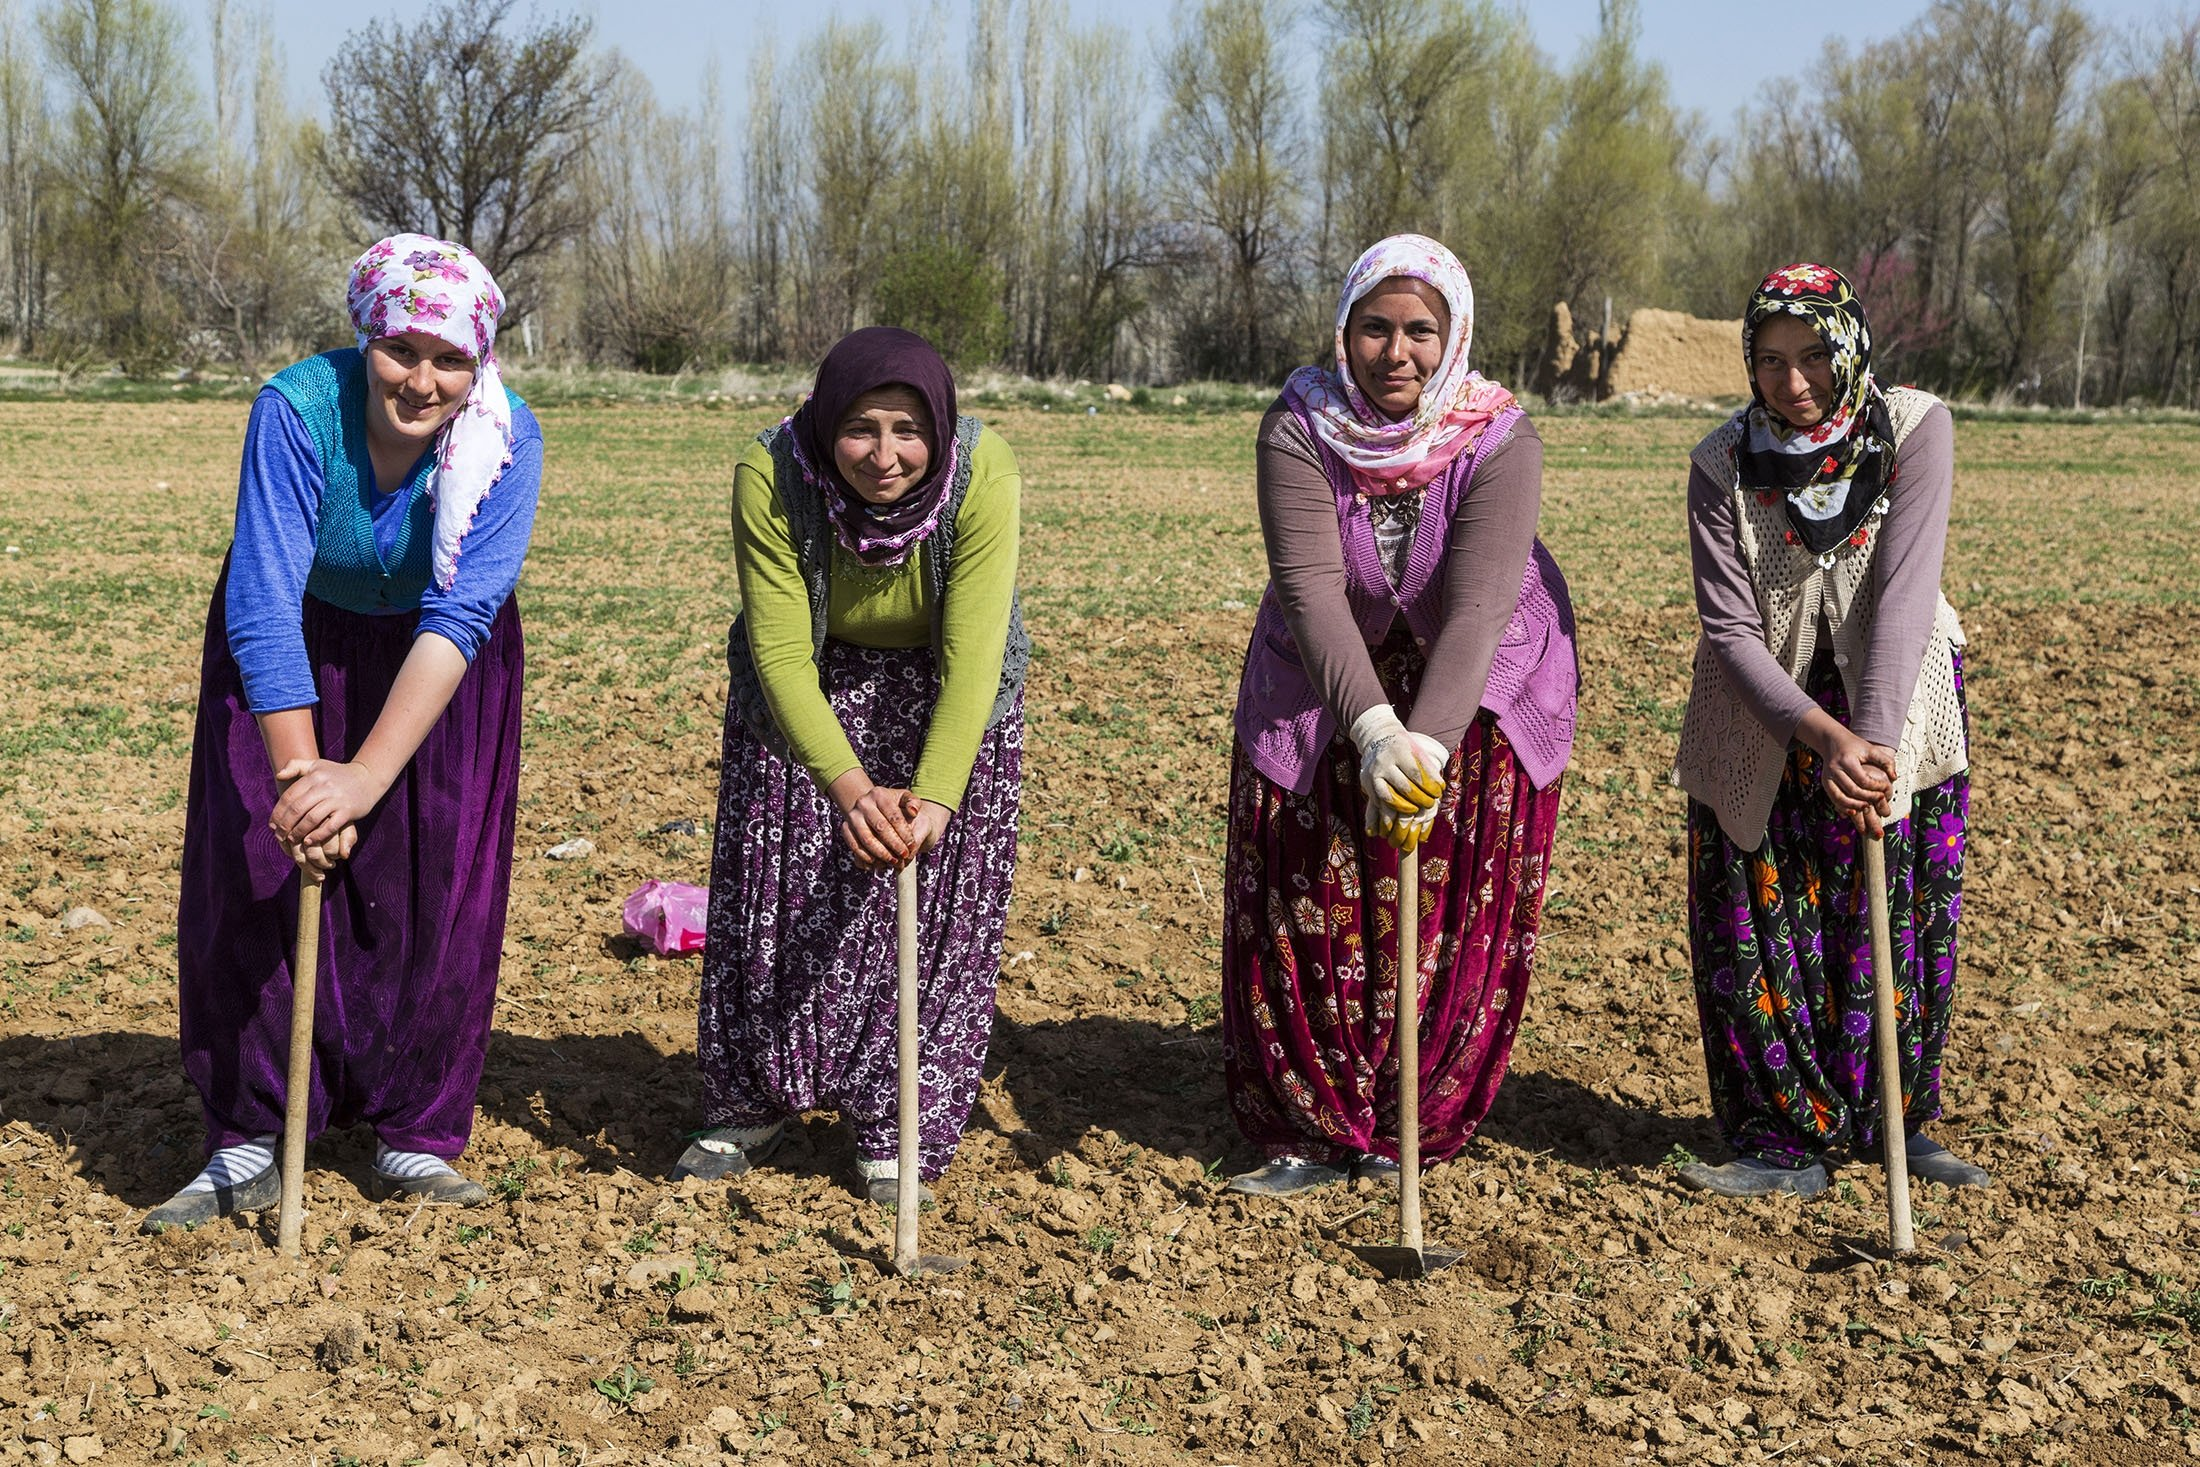 Women working in the fields are seen wearing şalvars in colorful fabrics and patterns in Konya, central Turkey, April 5, 2016. (Shutterstock Photo)